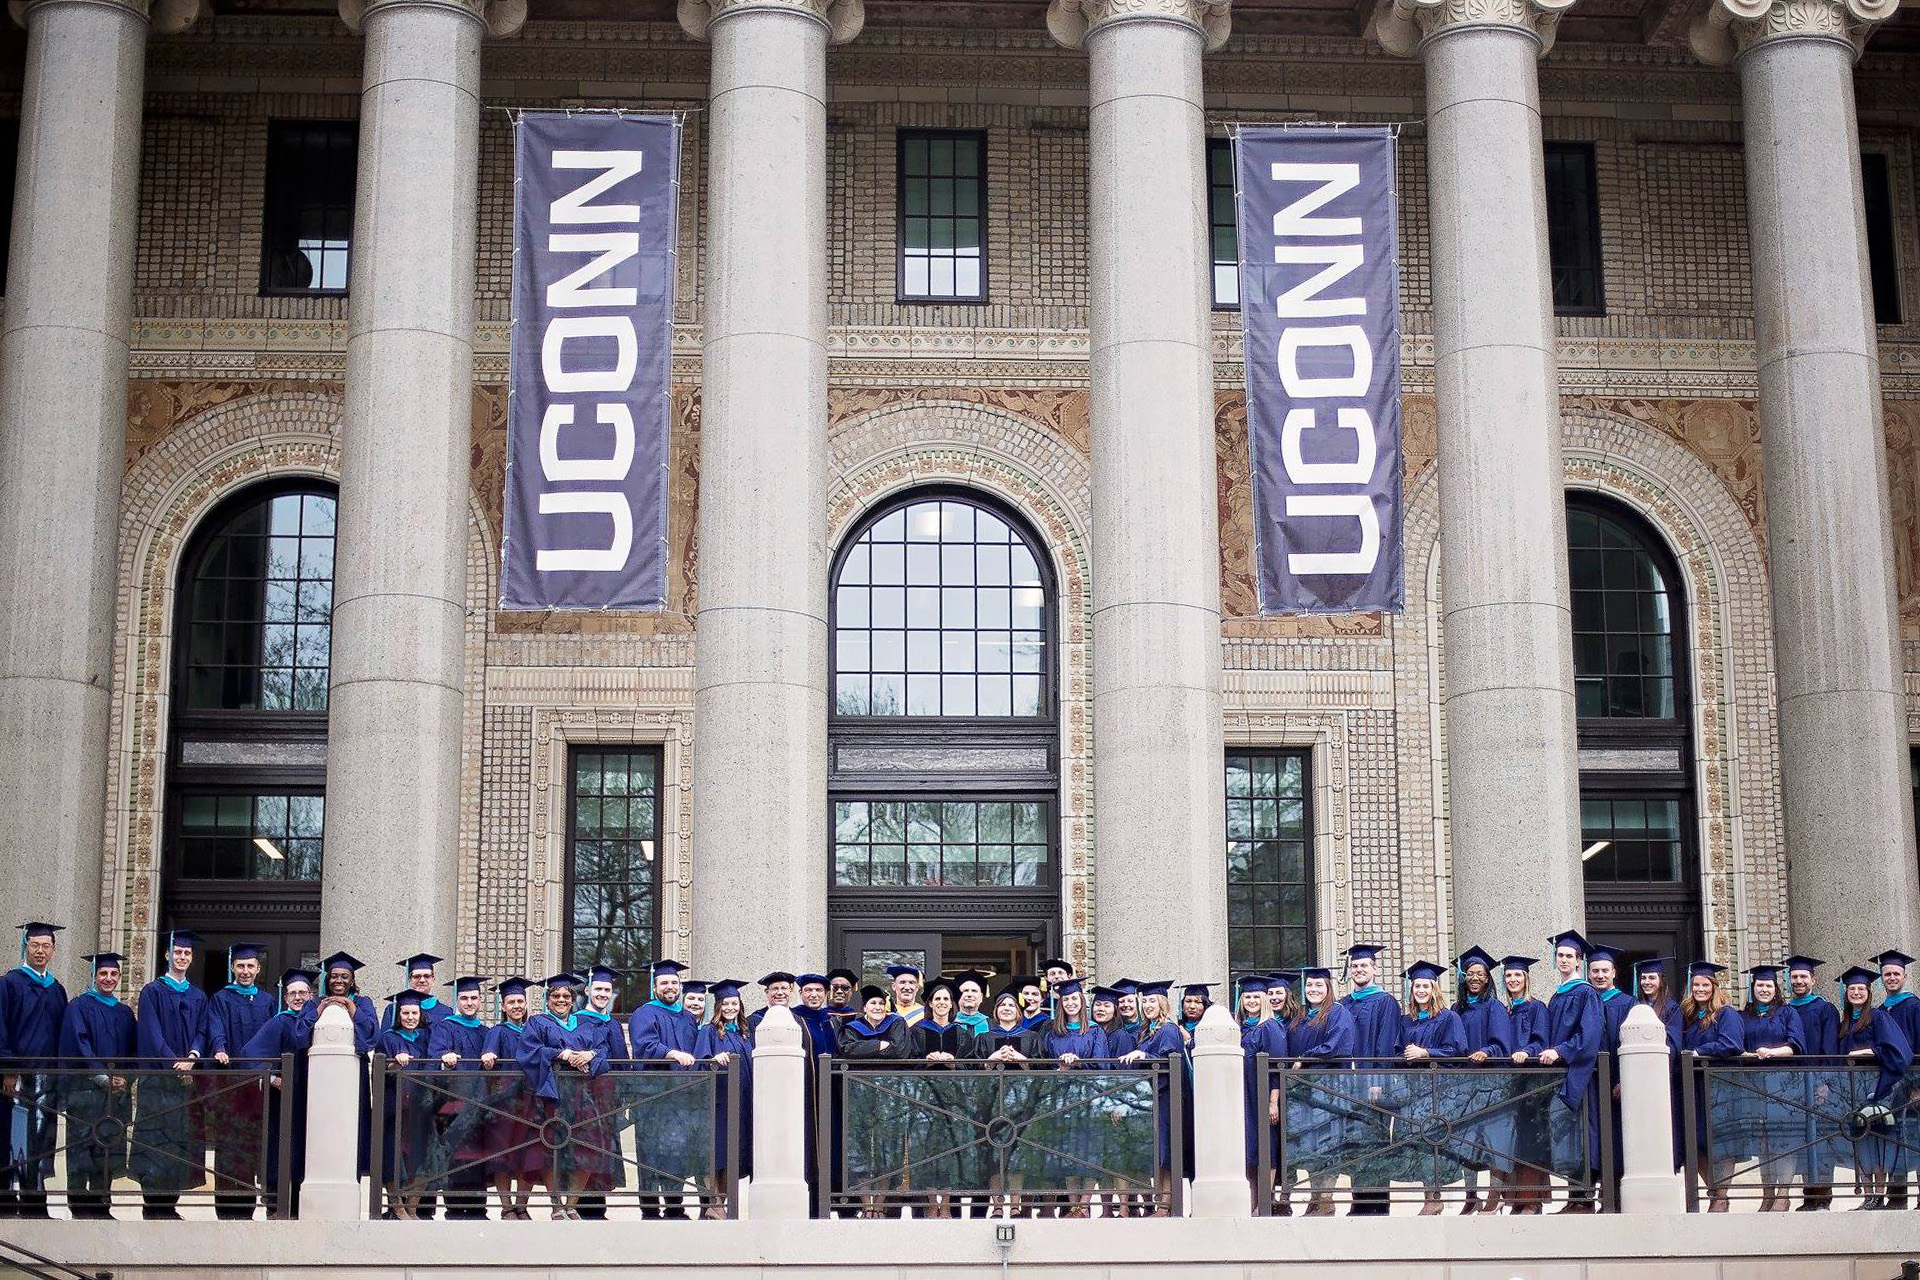 A large group of alumni and faculty in academic regalia lined up in front of the Hartford Times Building beneath two large UConn banners.